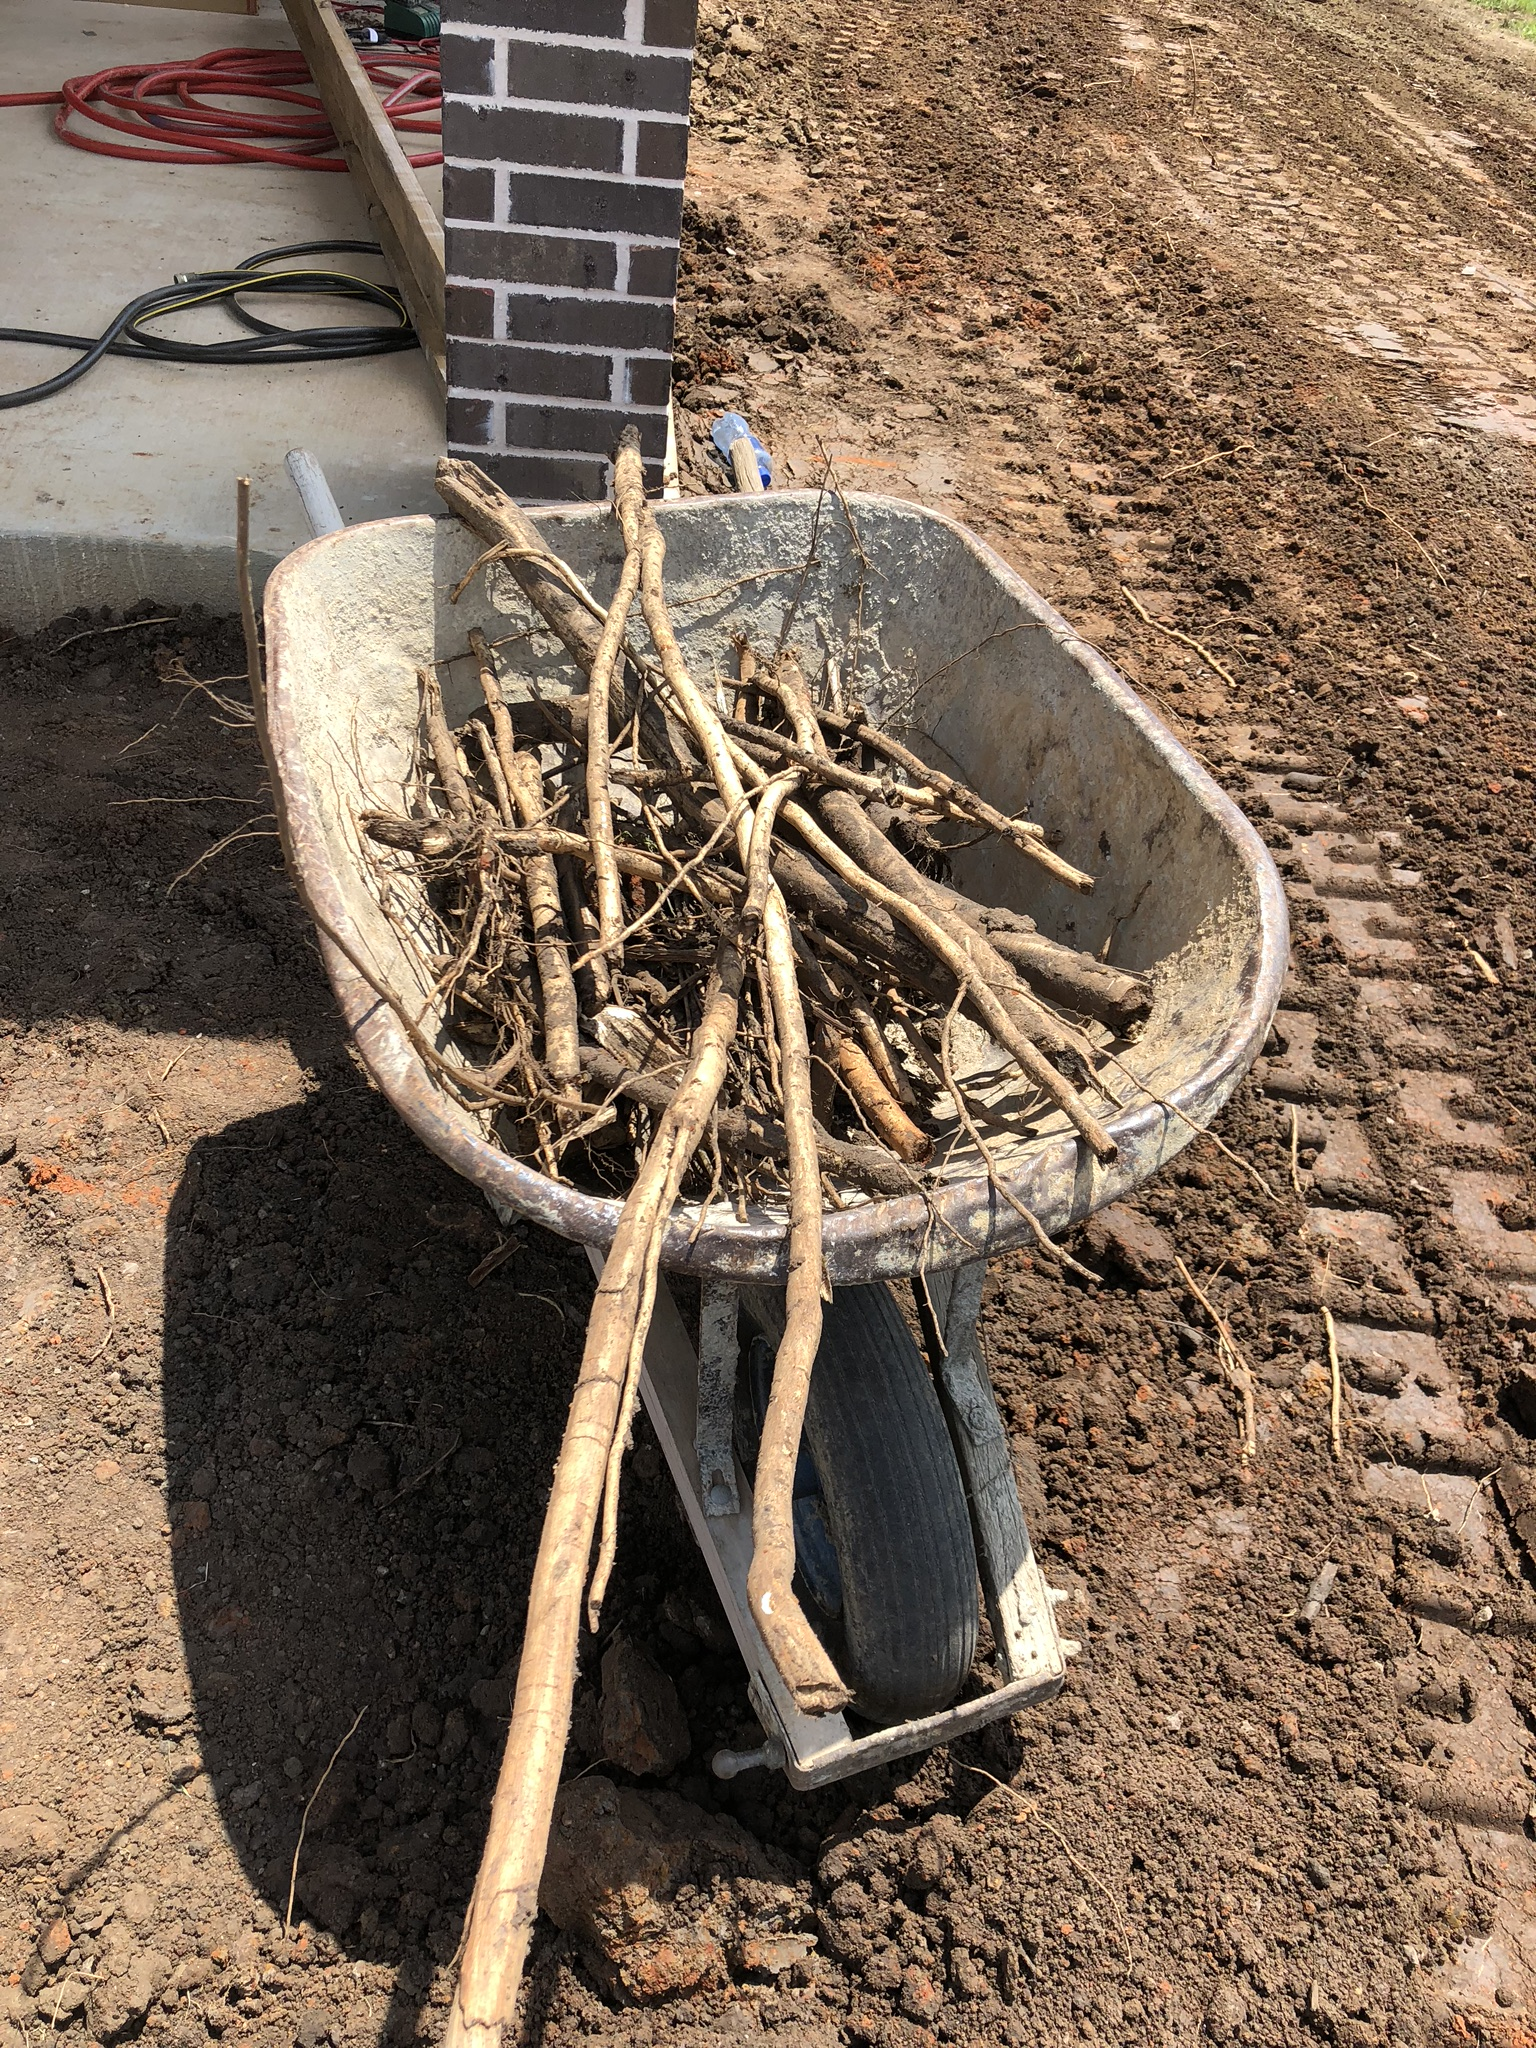 Not all soil is created equal. In the case of the Tioga Job, we ran into some tree roots we weren't expecting. Believe us, we've seen worse. Our crews politely gathered this wood for us for this nice snap shot of what lingers beneath the soil of your home.